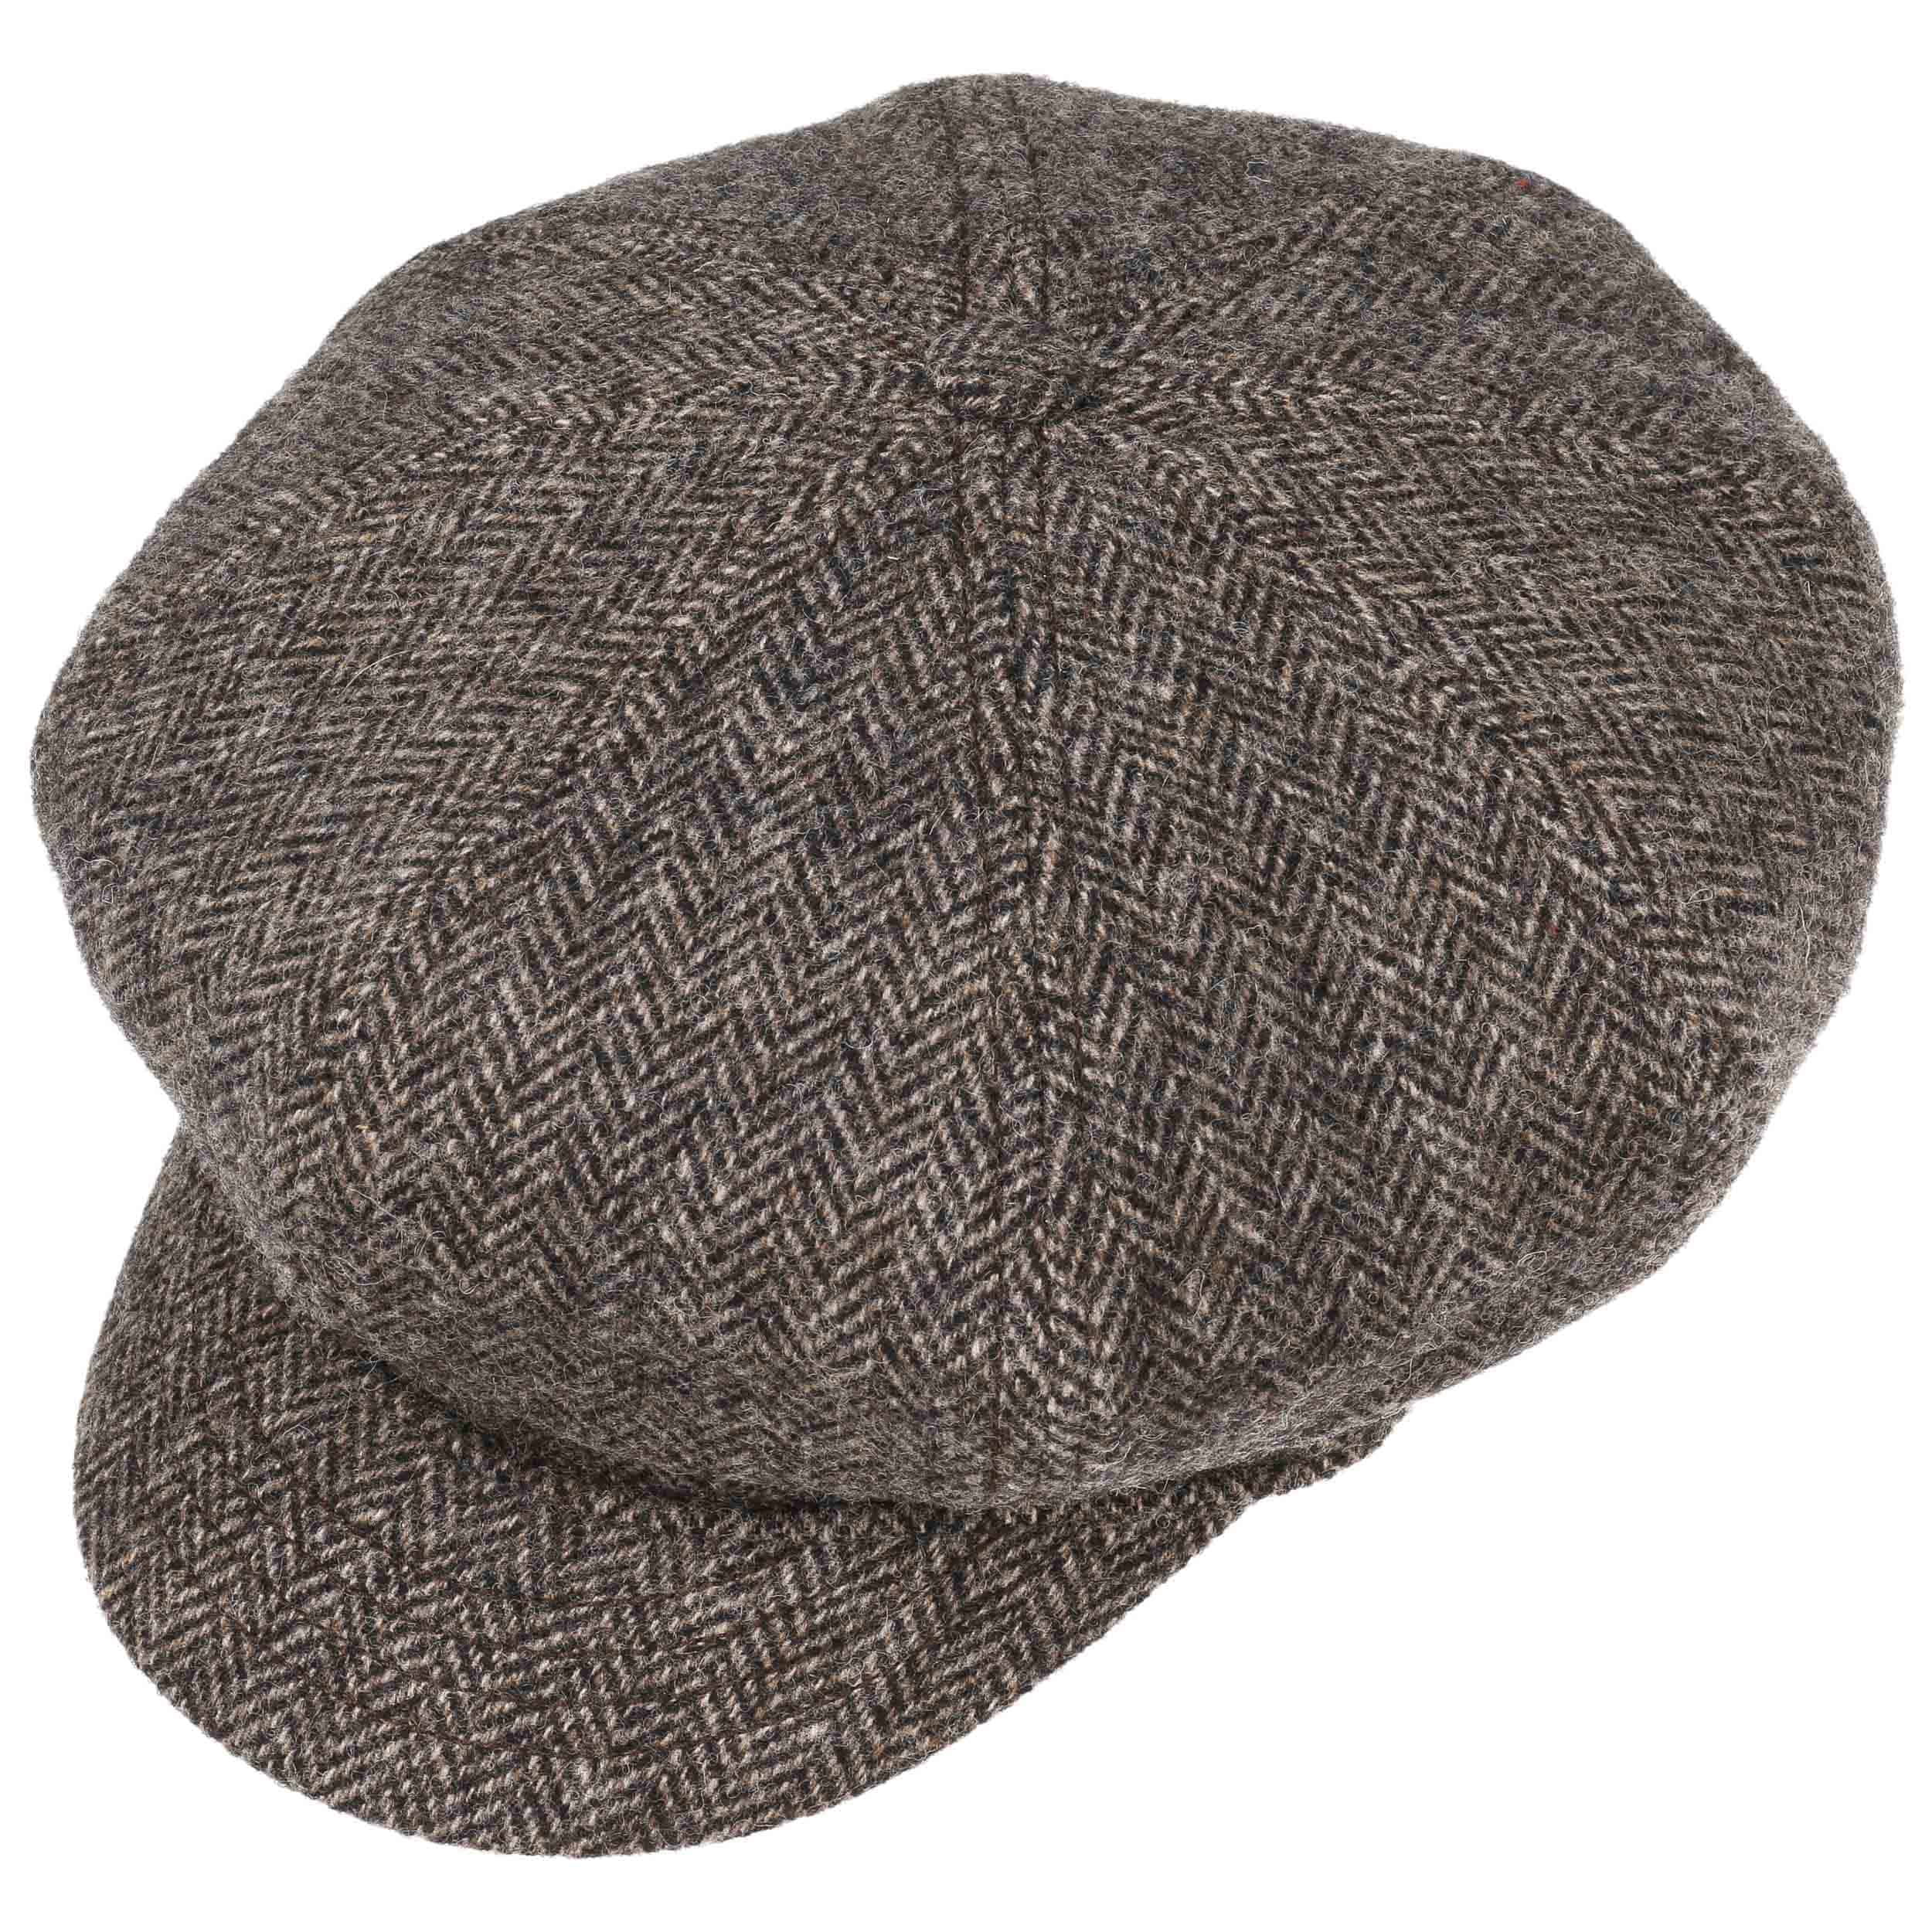 8-Panel Woolrich Newsboy Cap by Stetson - brown 1 ... 18dc44c35ae